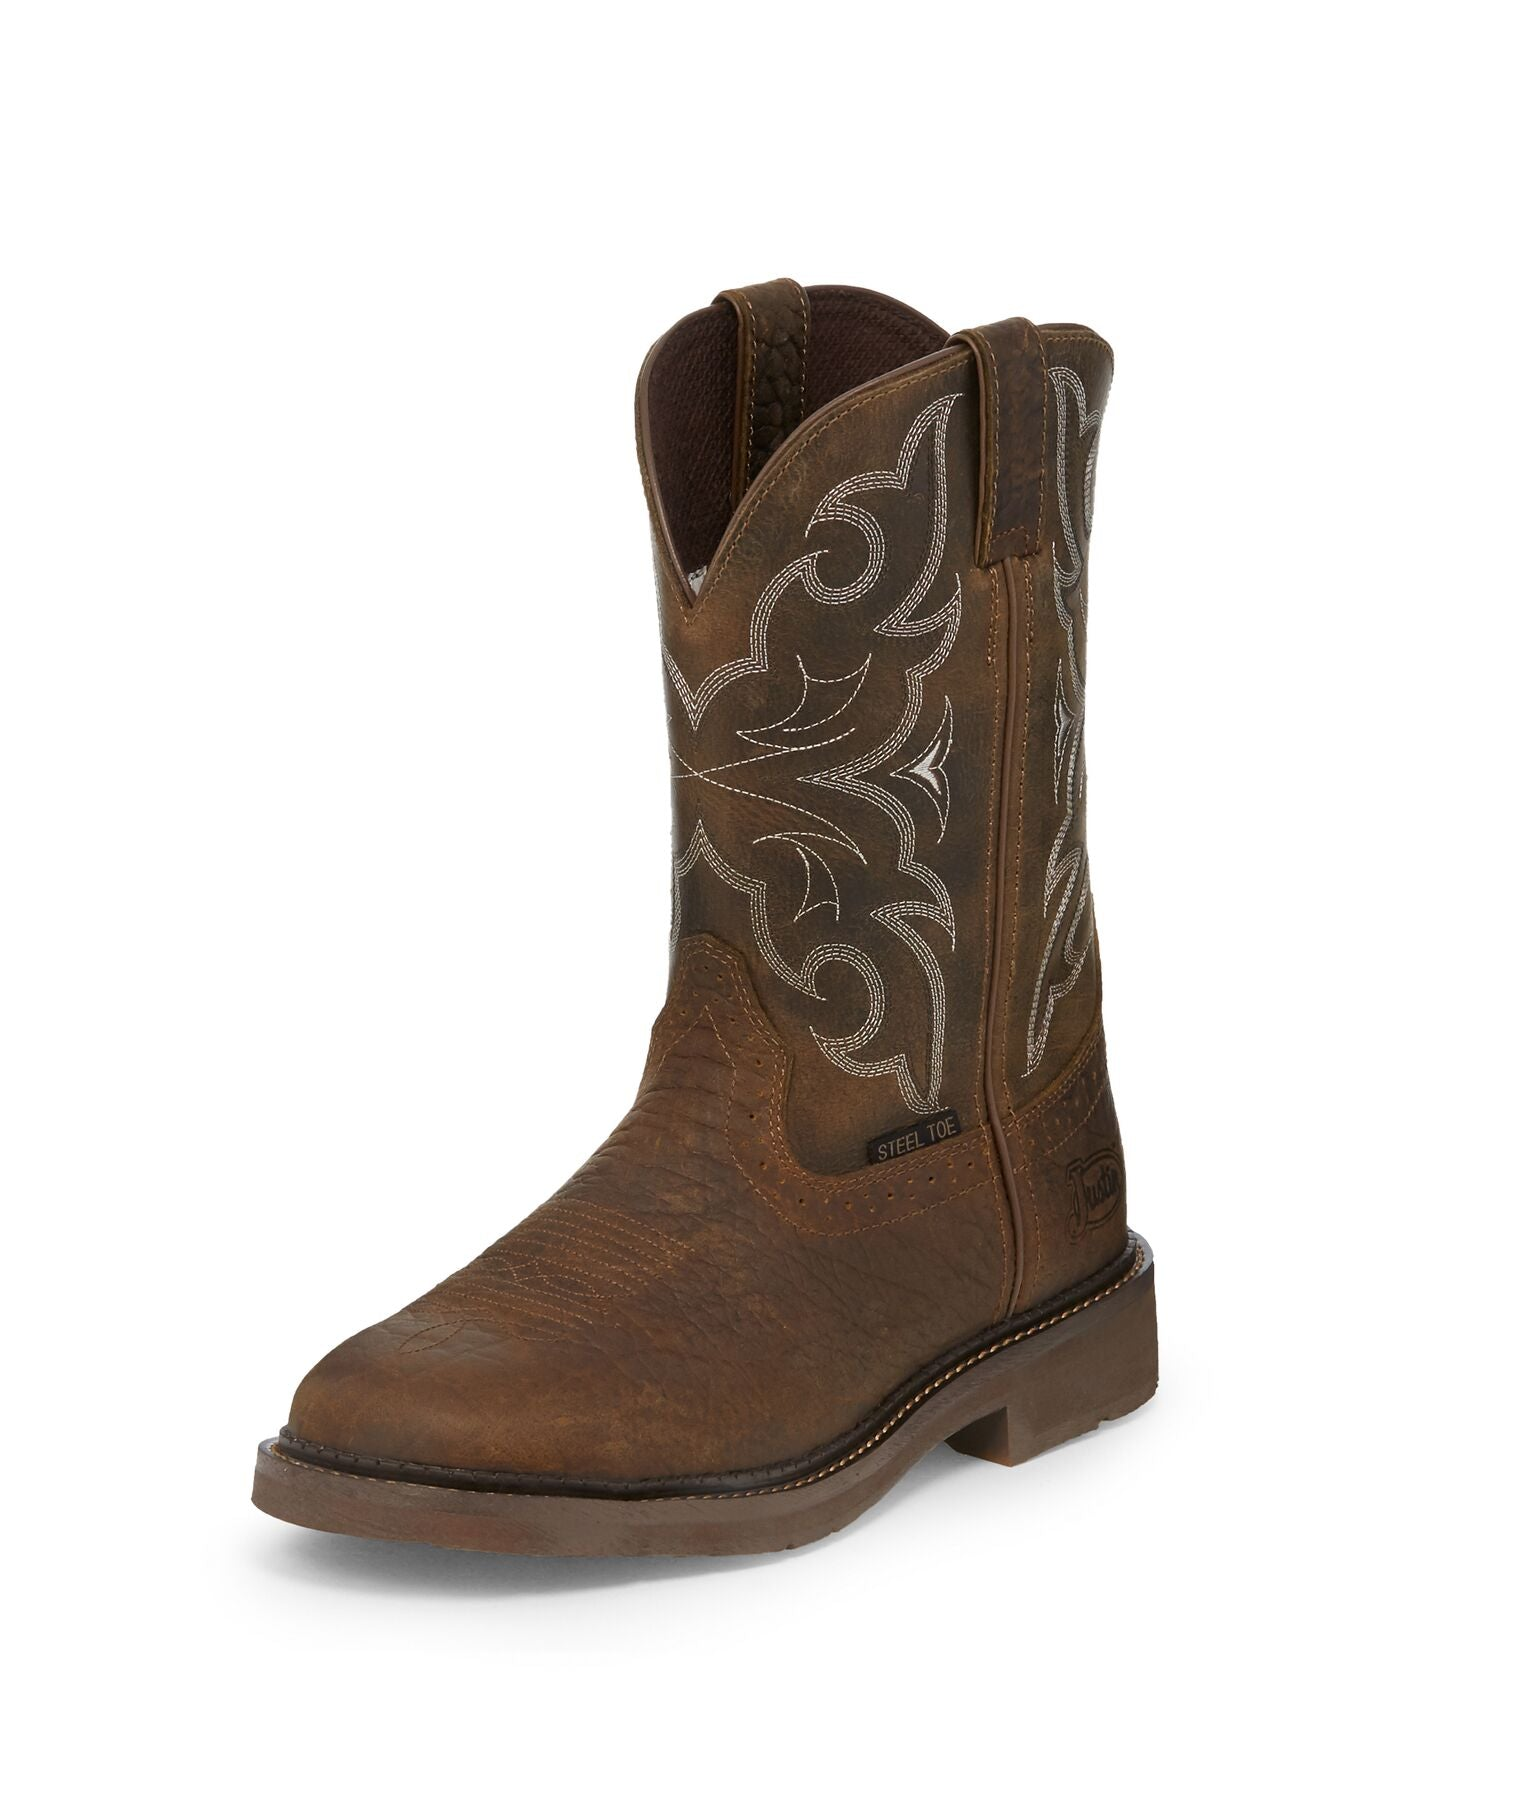 'Justin' WK4311 - Amarillo Steel Toe Cowboy Boot - Chocolate / Beige